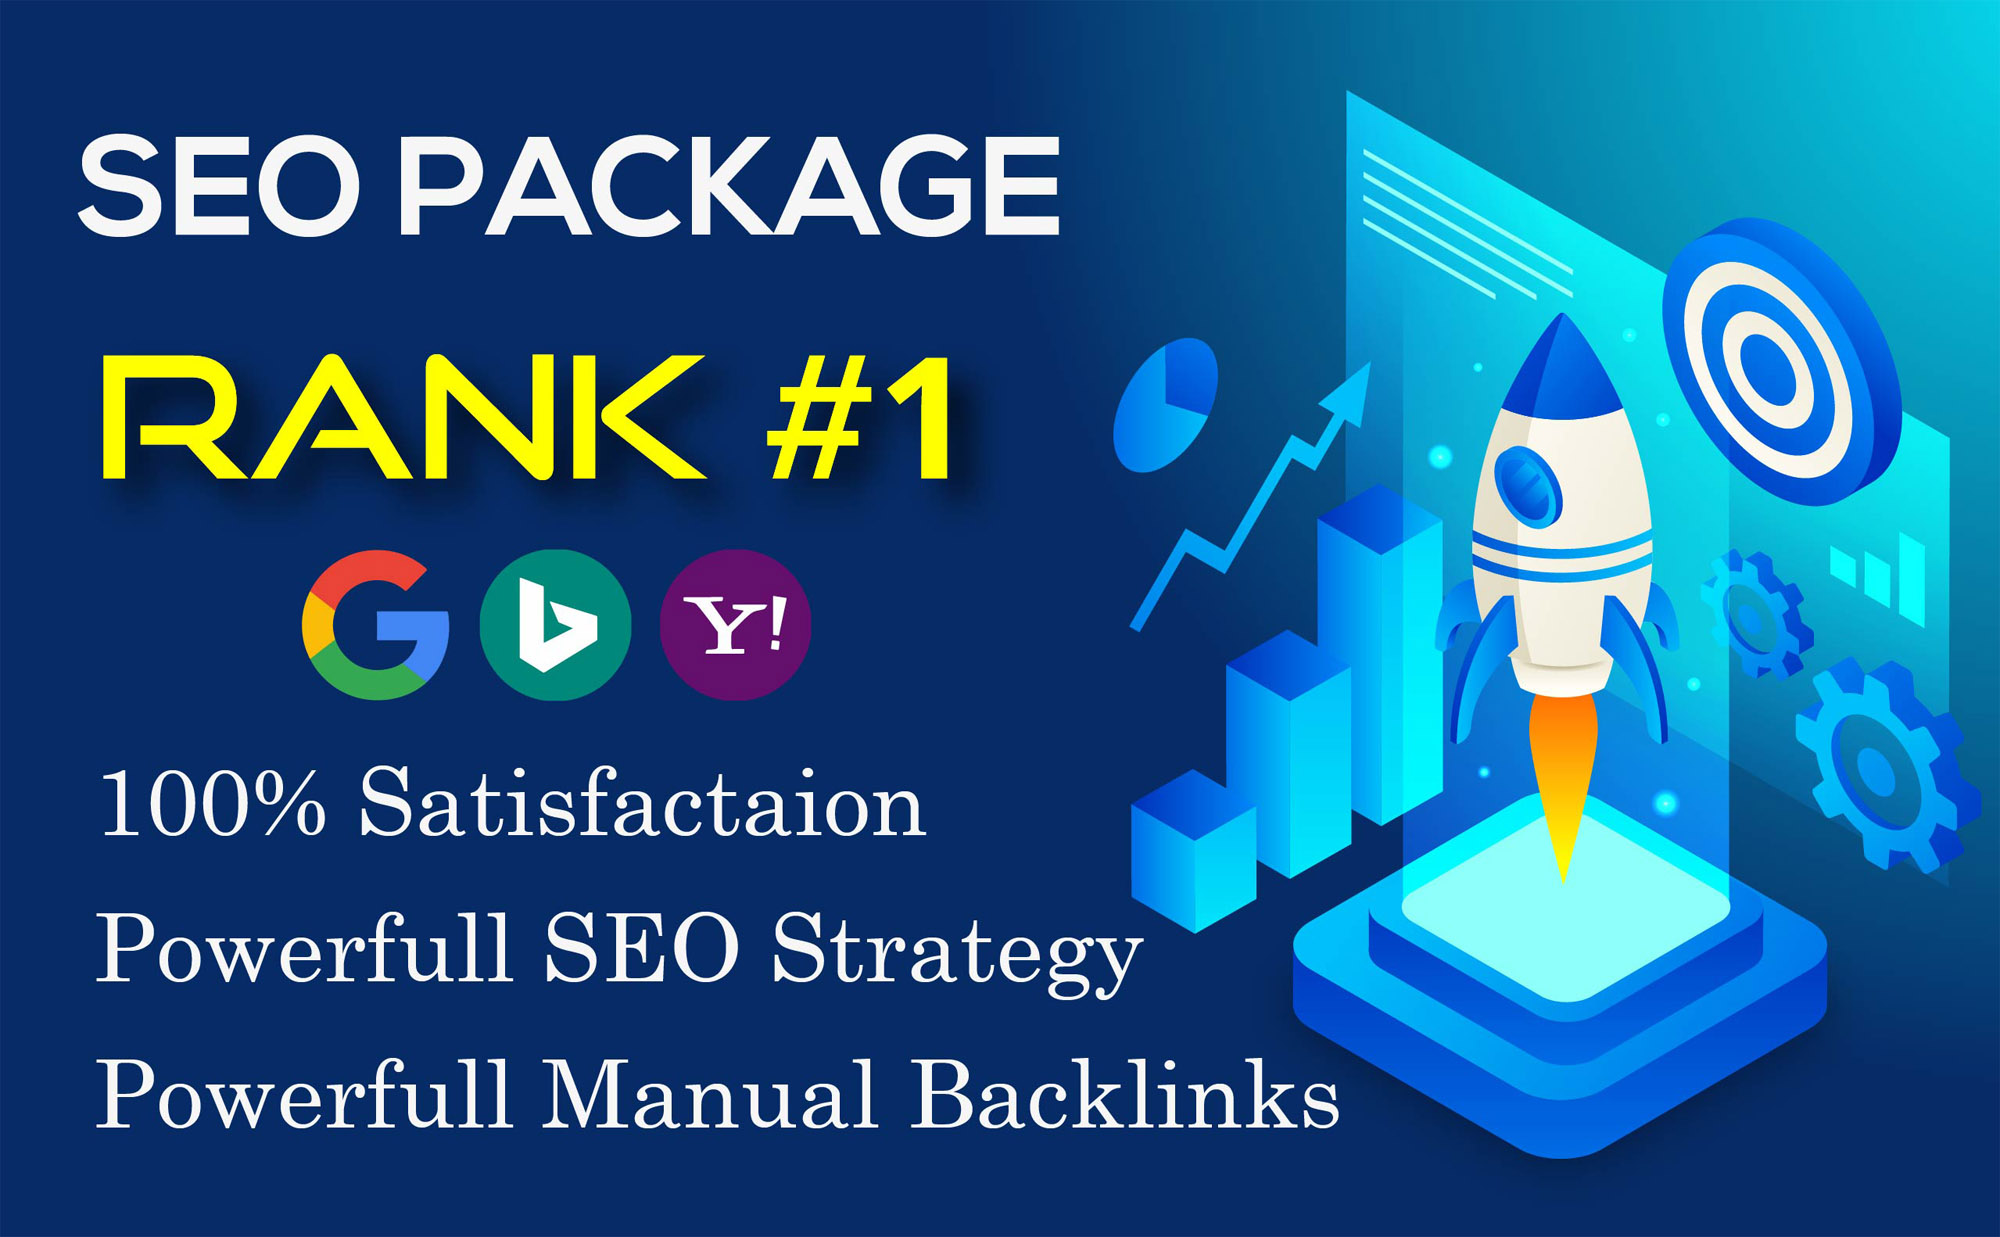 Build Power Full Seo Package With guaranted Ranking